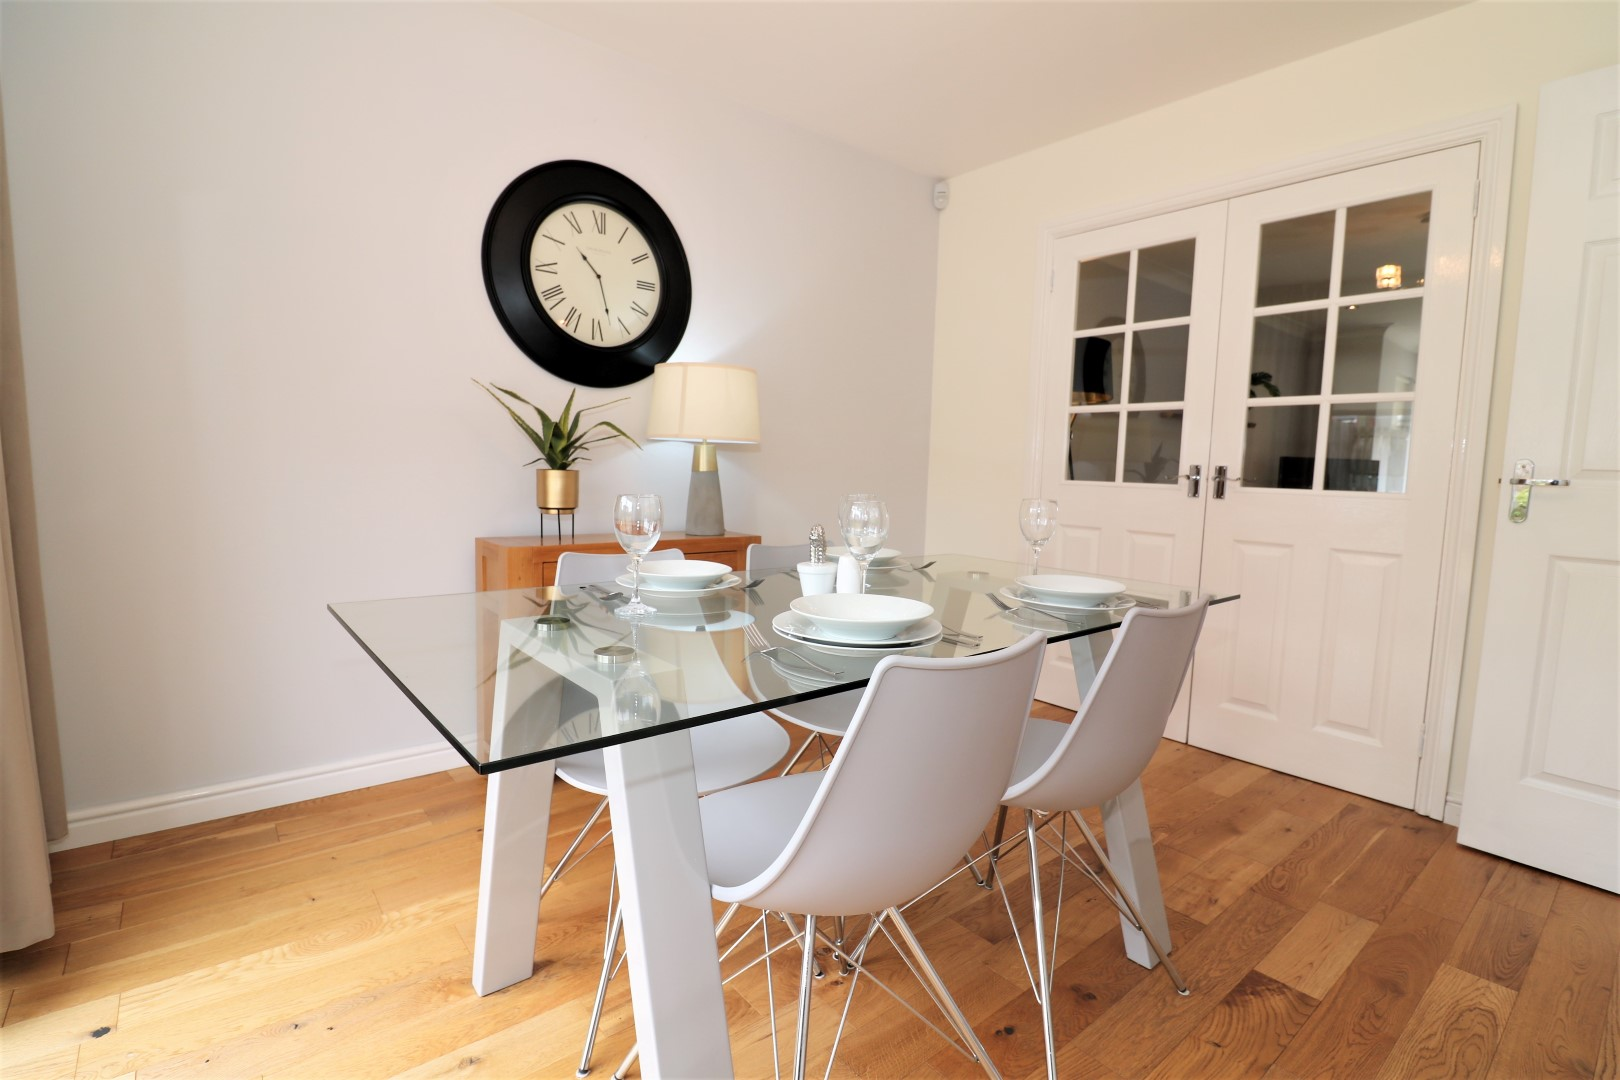 Dining room at Morrsion Way House